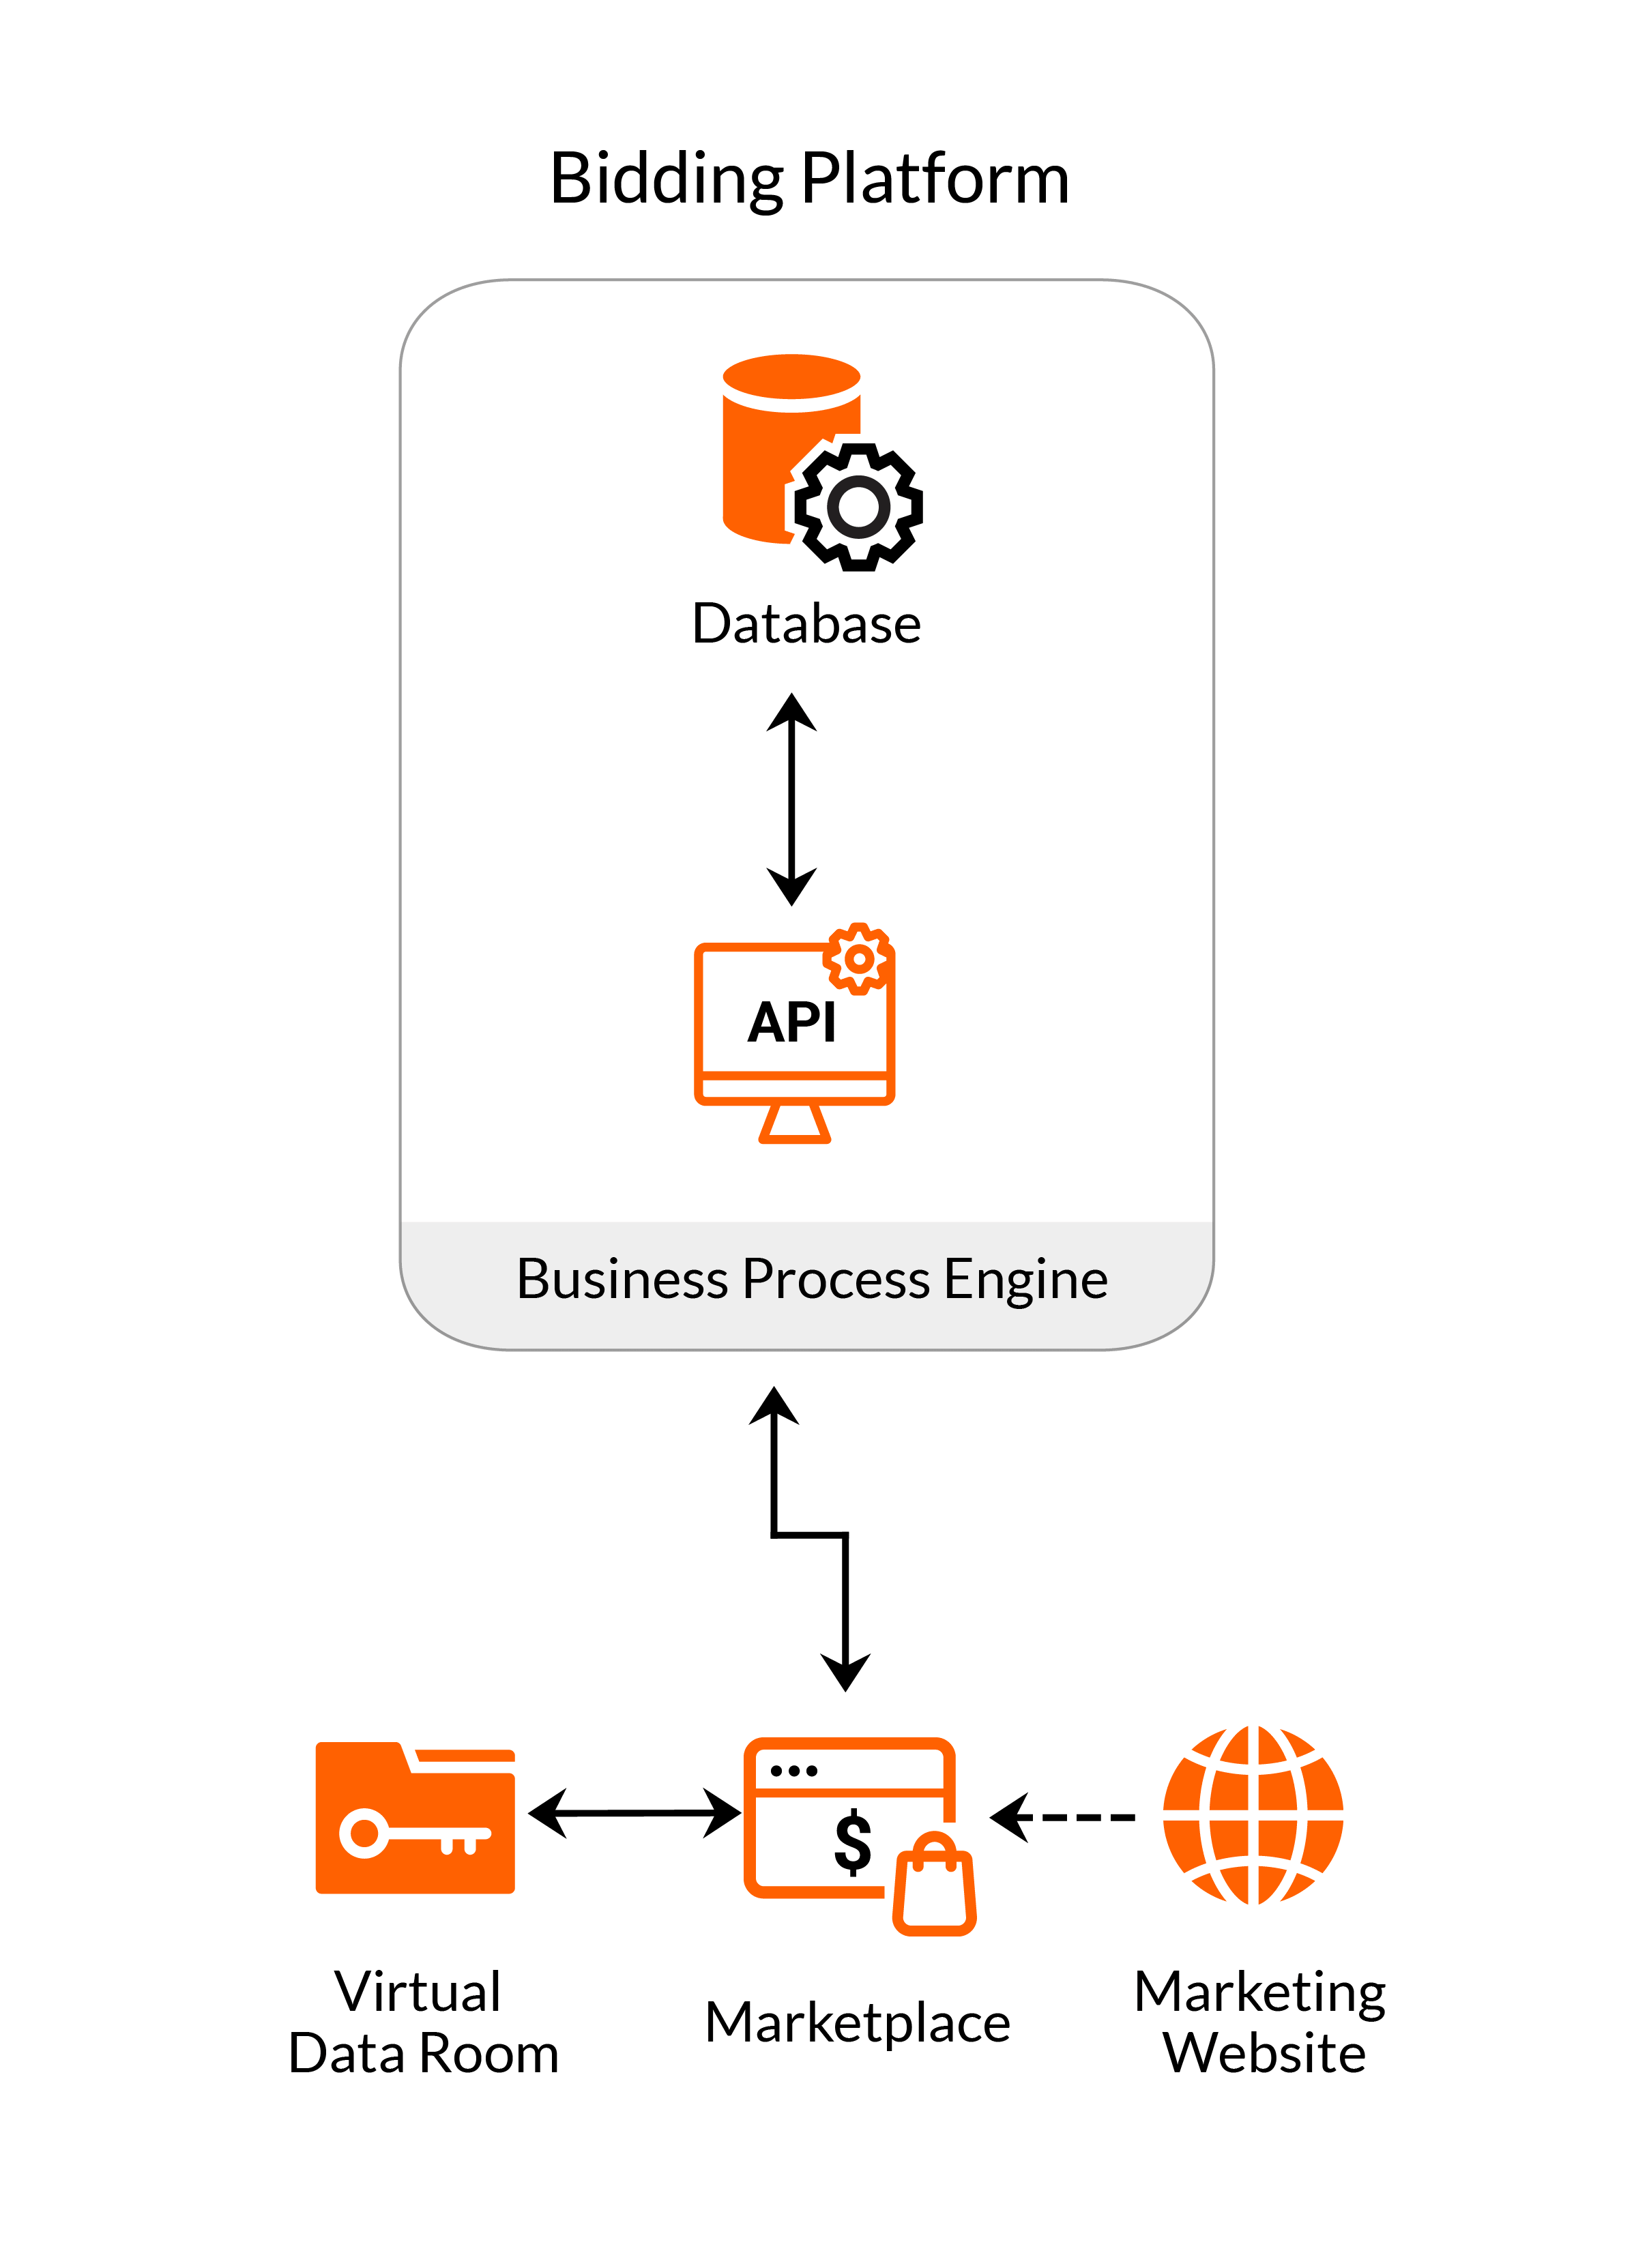 Architecture of a bidding platform